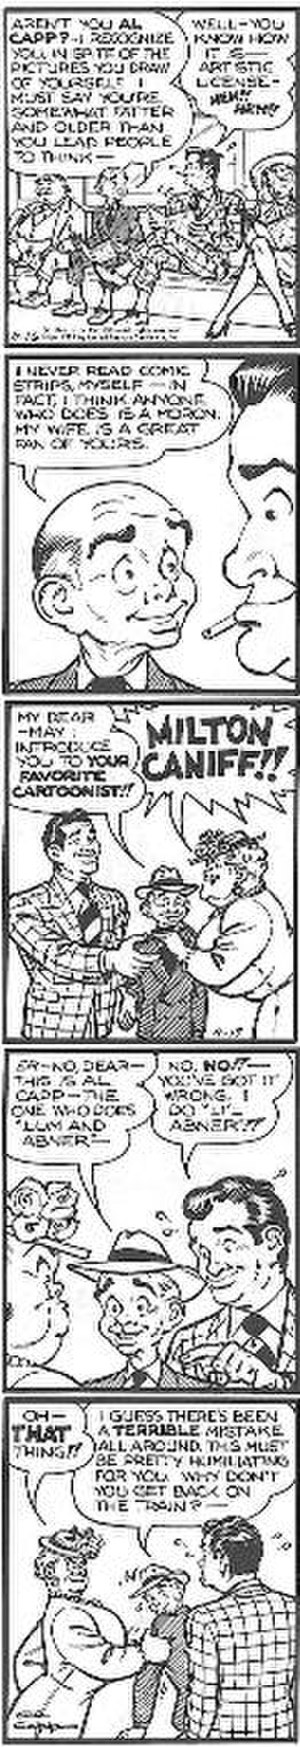 "Al Capp - ""I do Li'l Abner!!,"" a self-portrait by Al Capp, excerpted from the April 16–17, 1951 Li'l Abner strips. Note the reference to Milton Caniff."